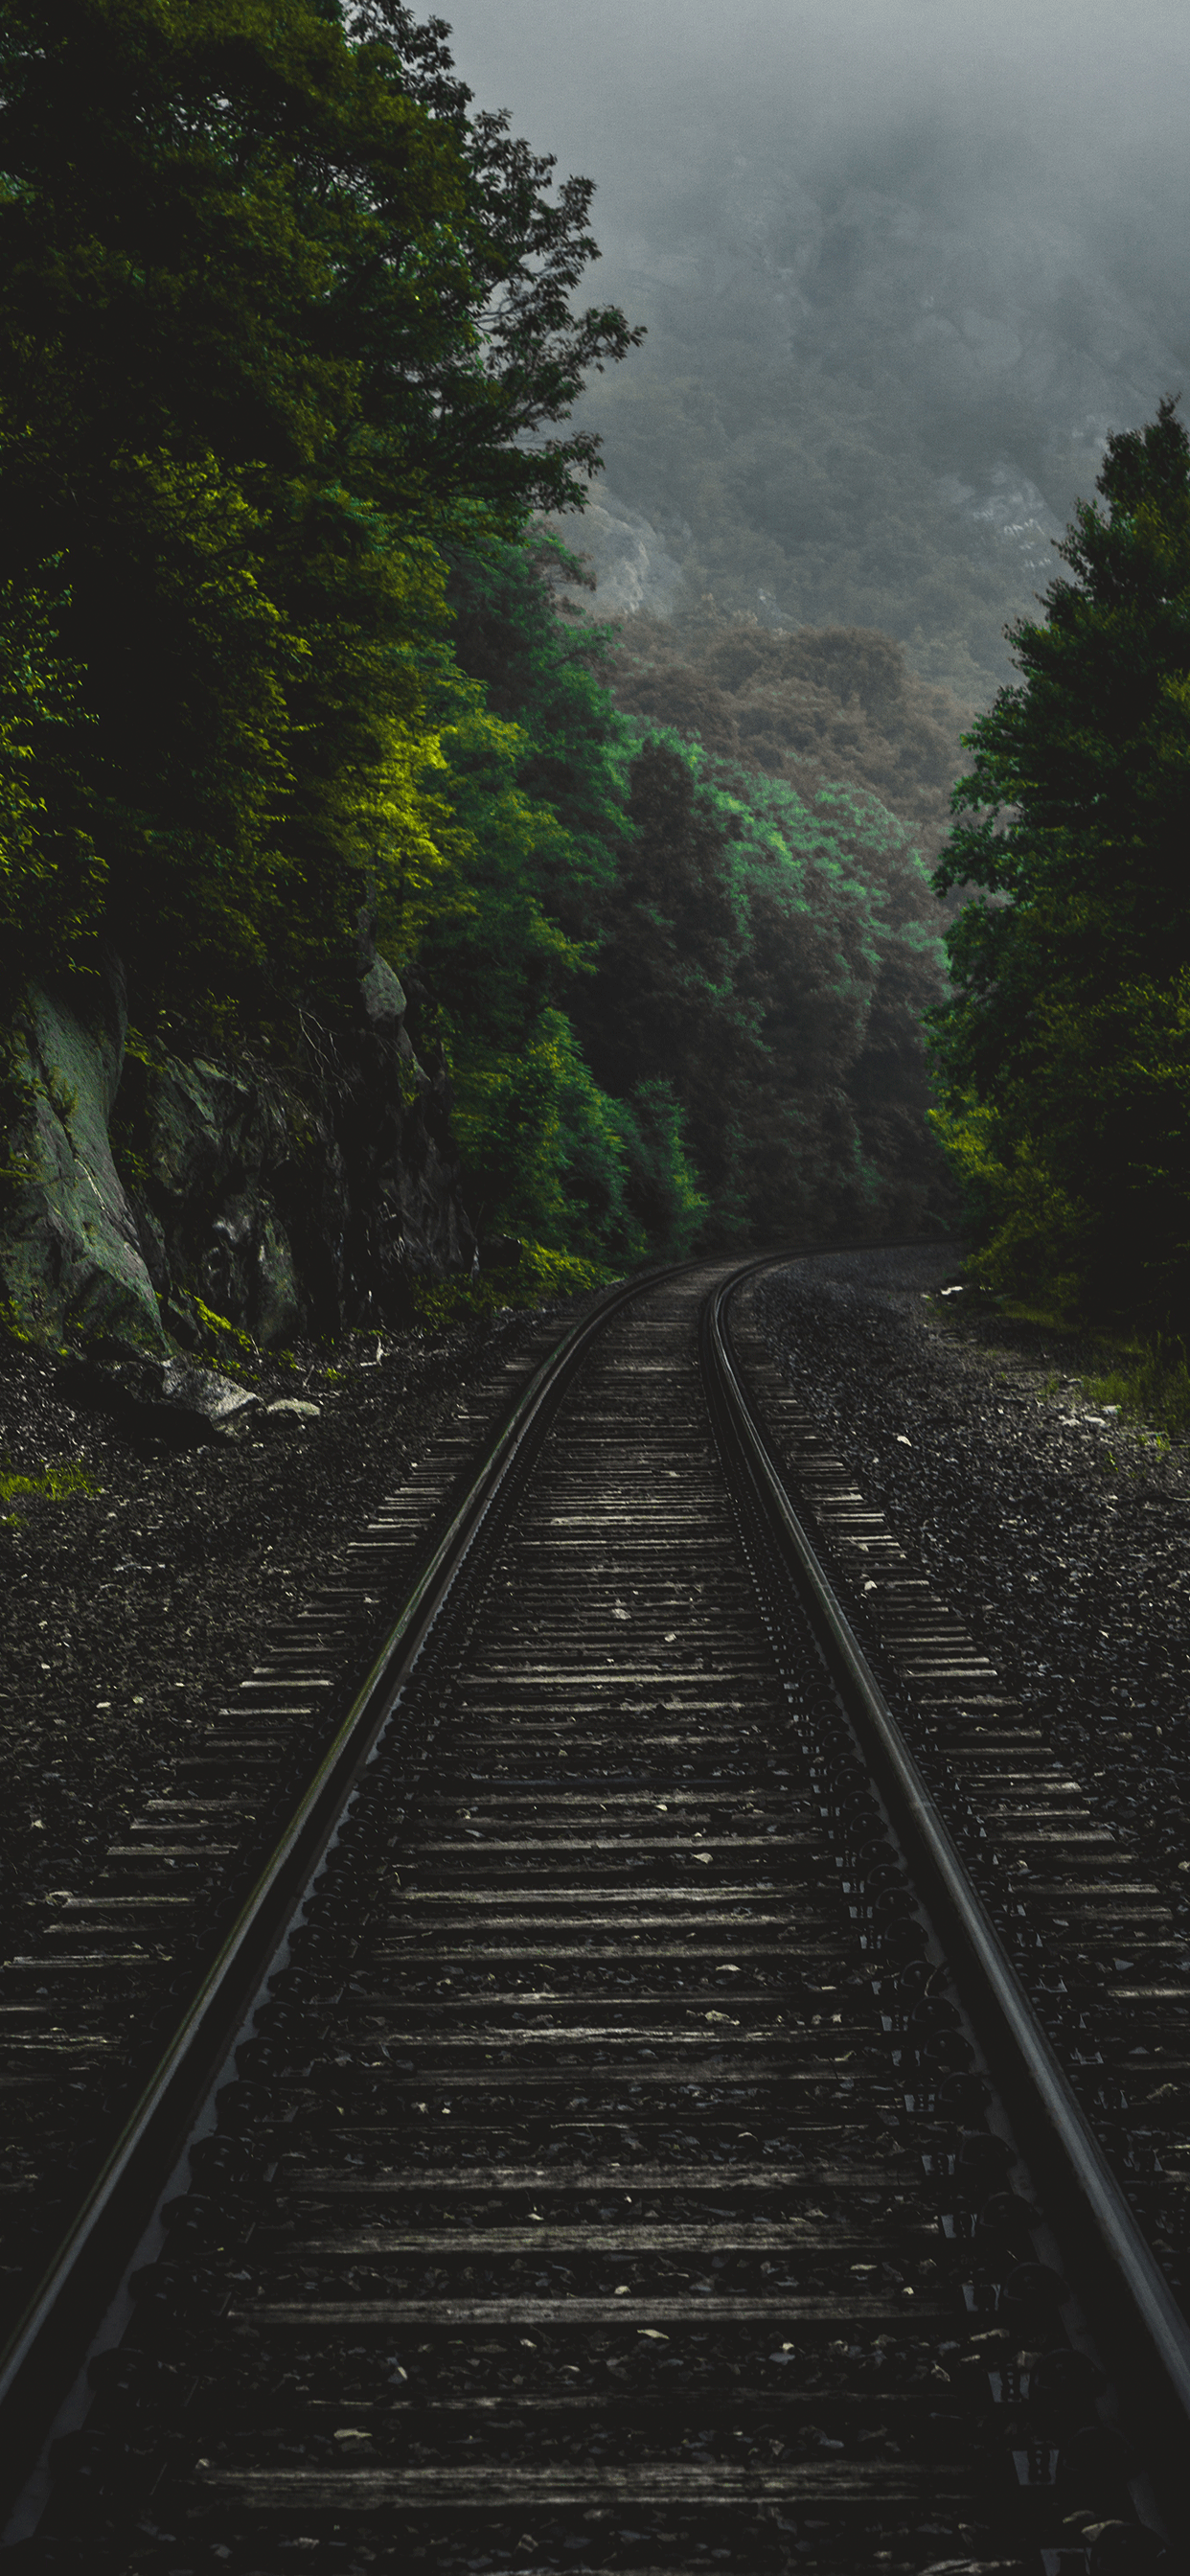 iPhone wallpaper rail way naugatuck Railway line